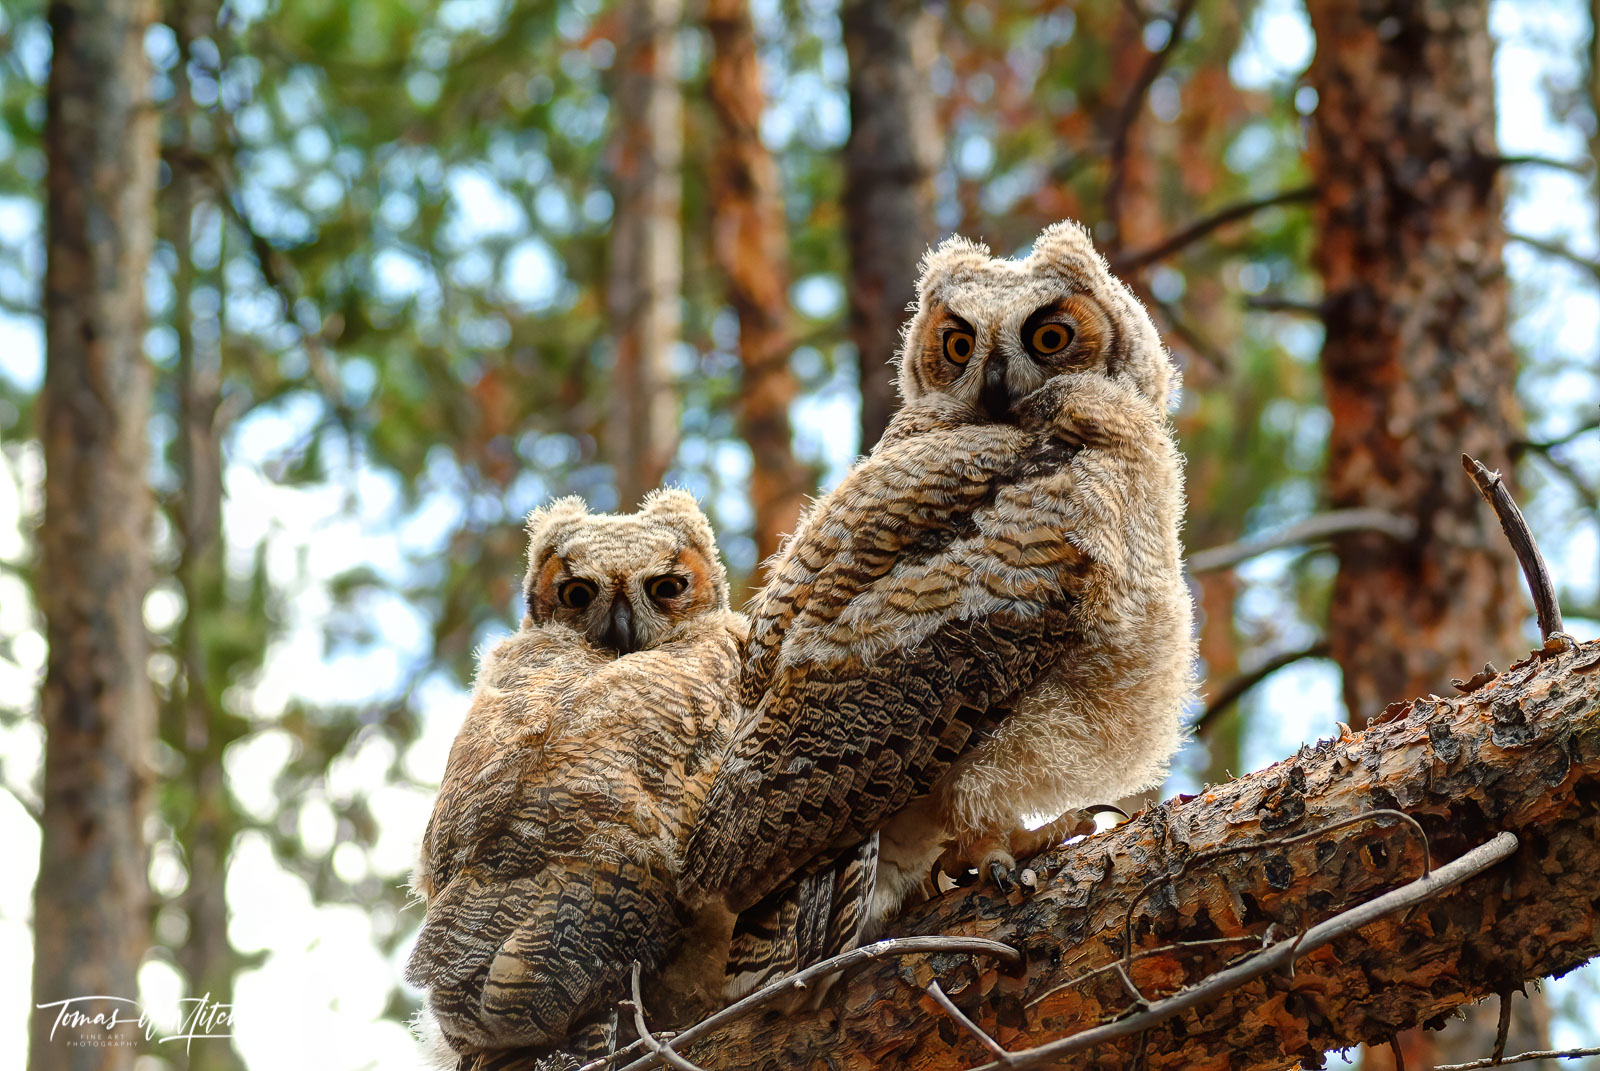 limited edition, fine art, prints, uinta mountains, utah, great horned owls, photo